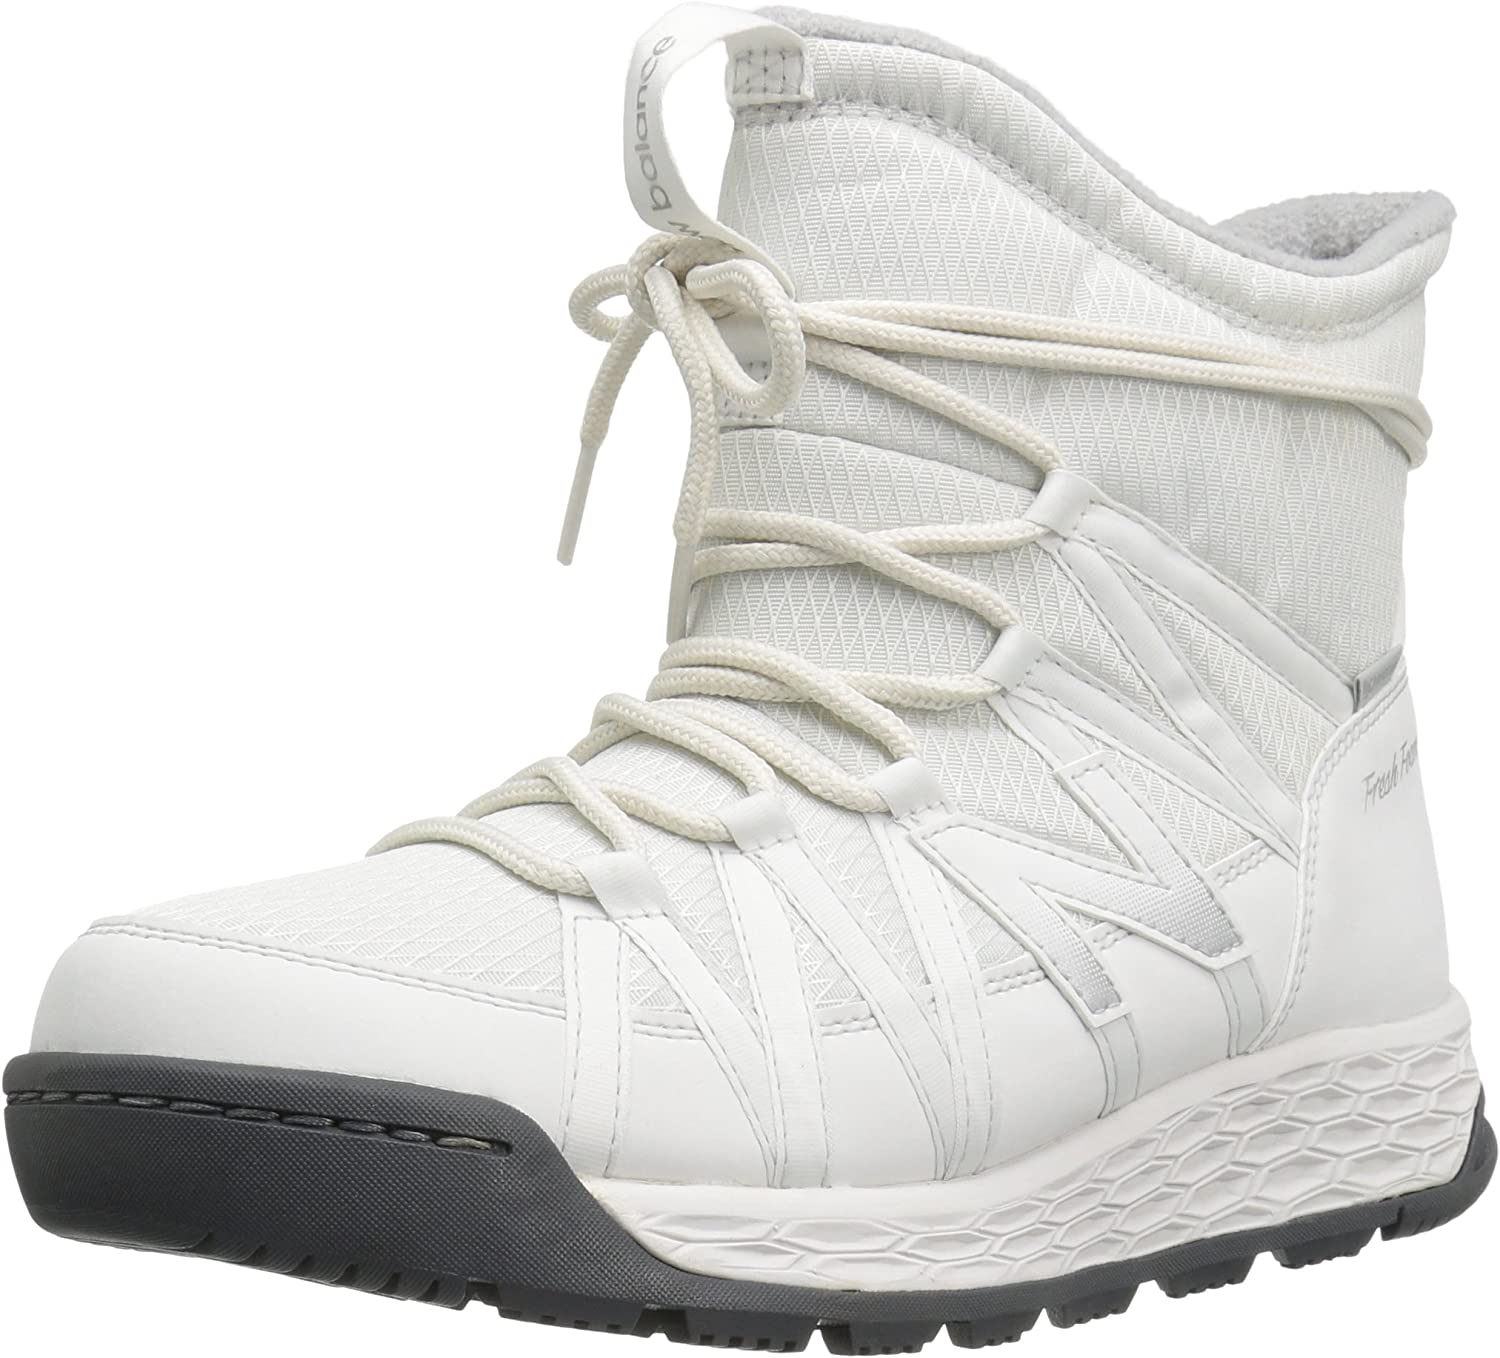 New Balance Womens BW2000V1 Fashion Boots